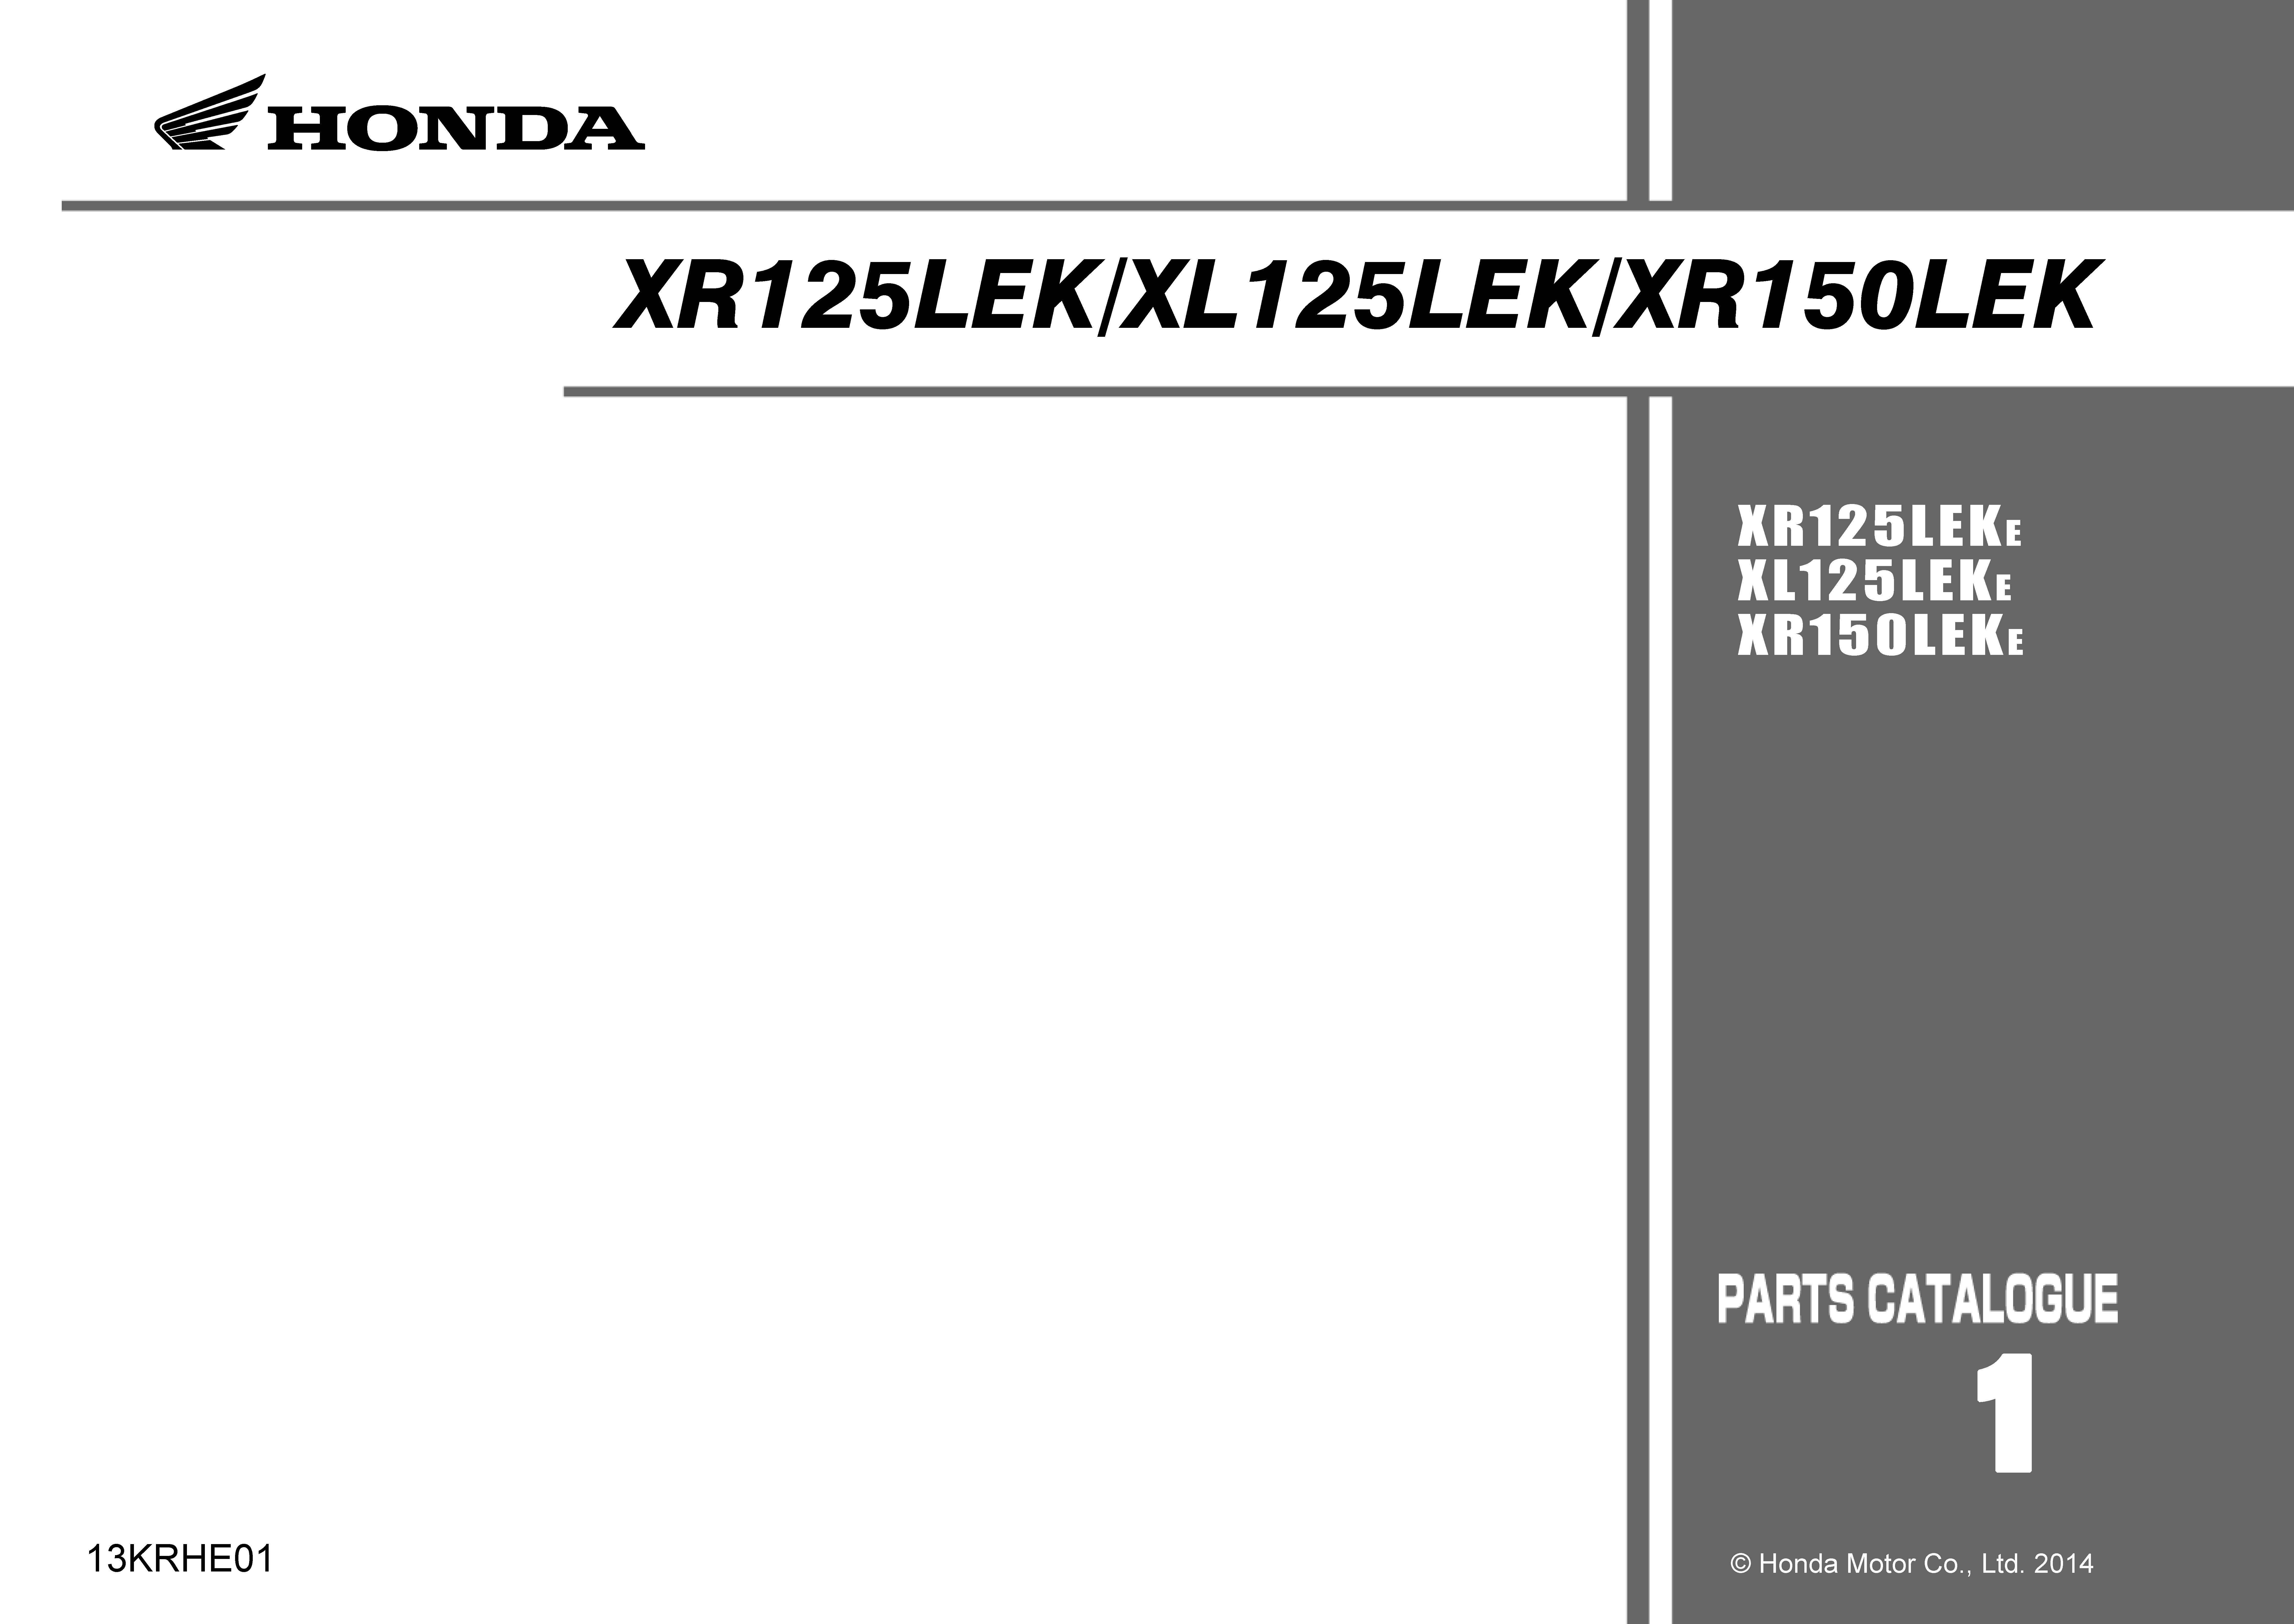 Parts list for Honda XR125LEK (2014)